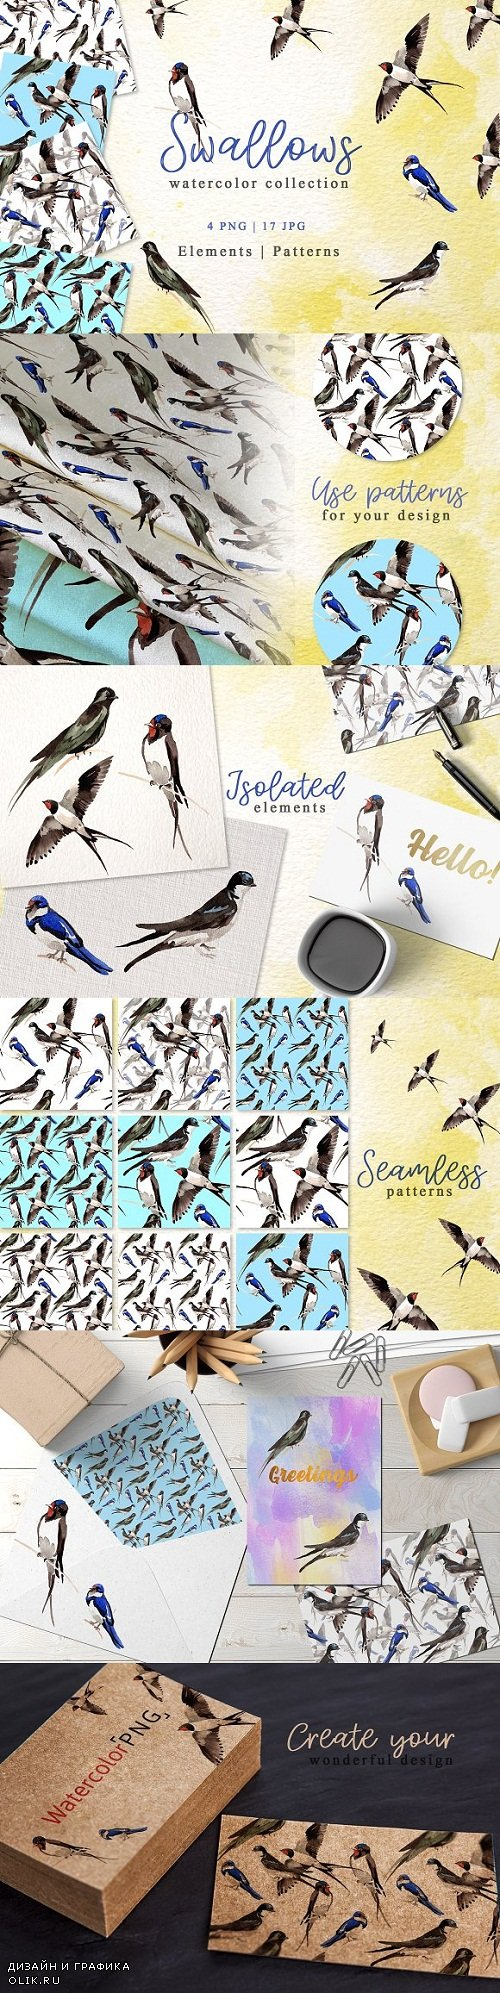 Swallows Watercolor png - 3415554